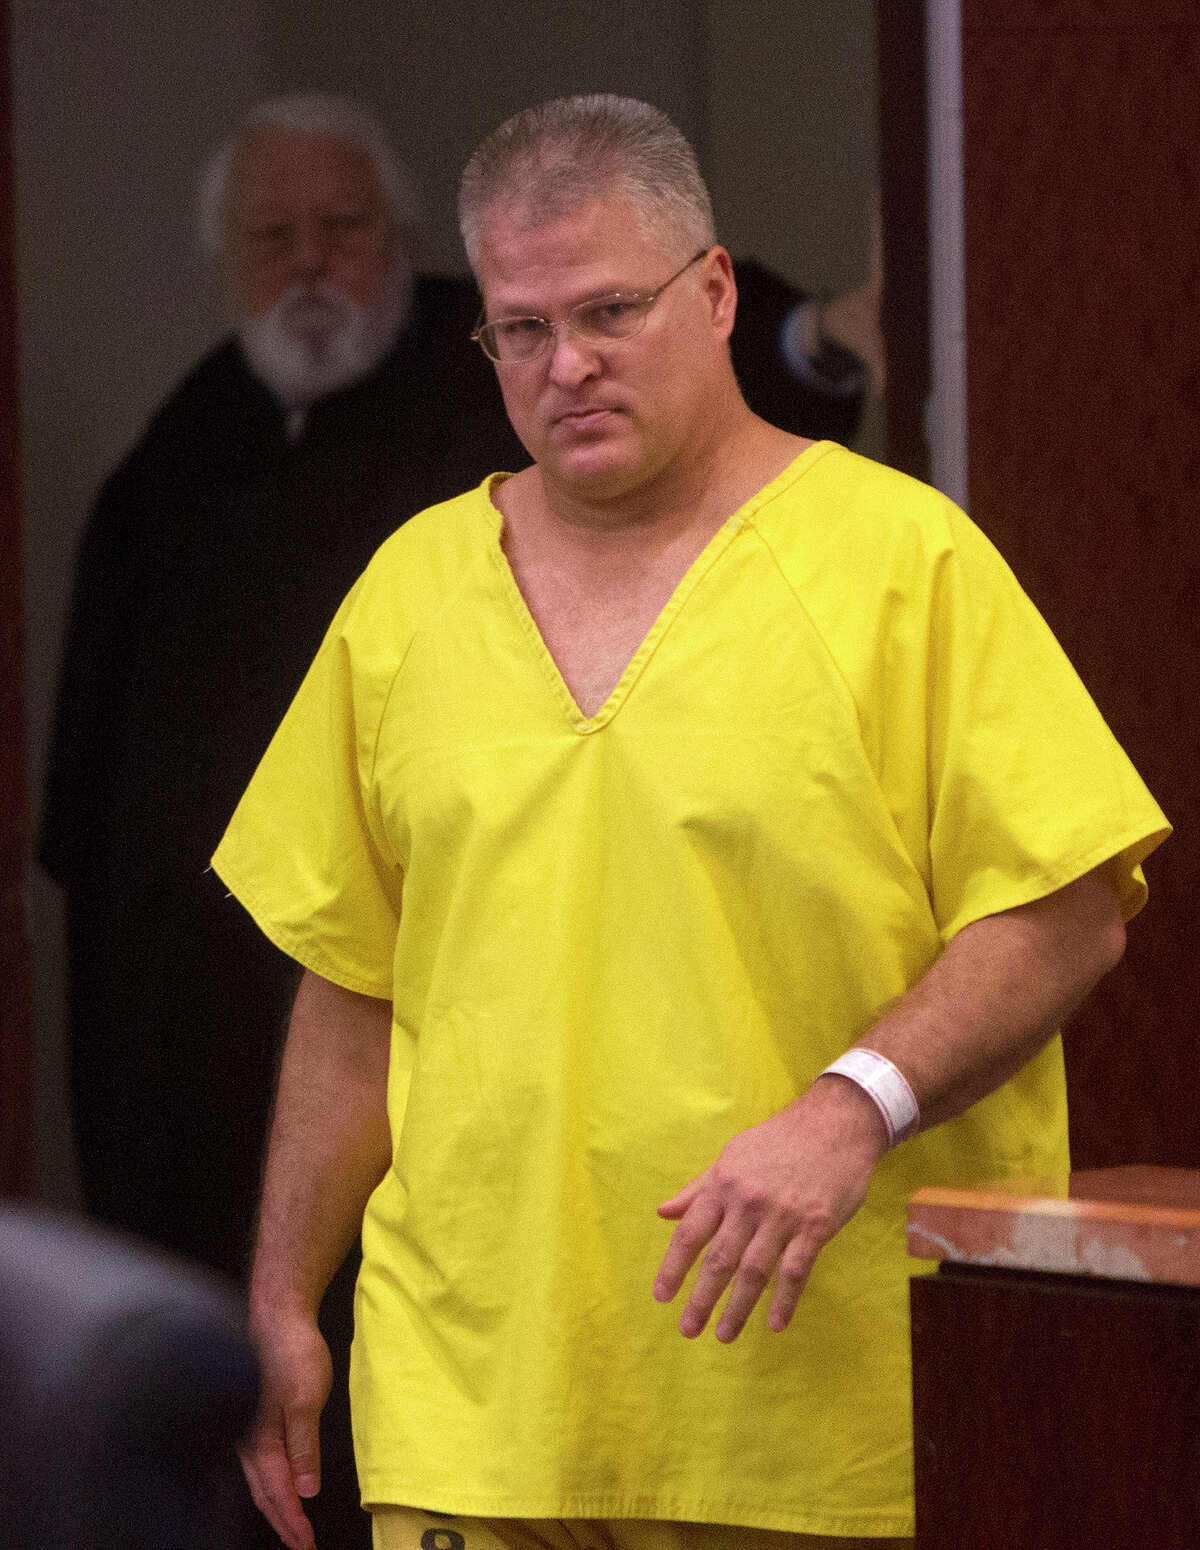 David Temple in court in 2014, seeking a retrial in the 1999 murder of his pregnant wife, Belinda. He was granted a retrial on Wednesday.